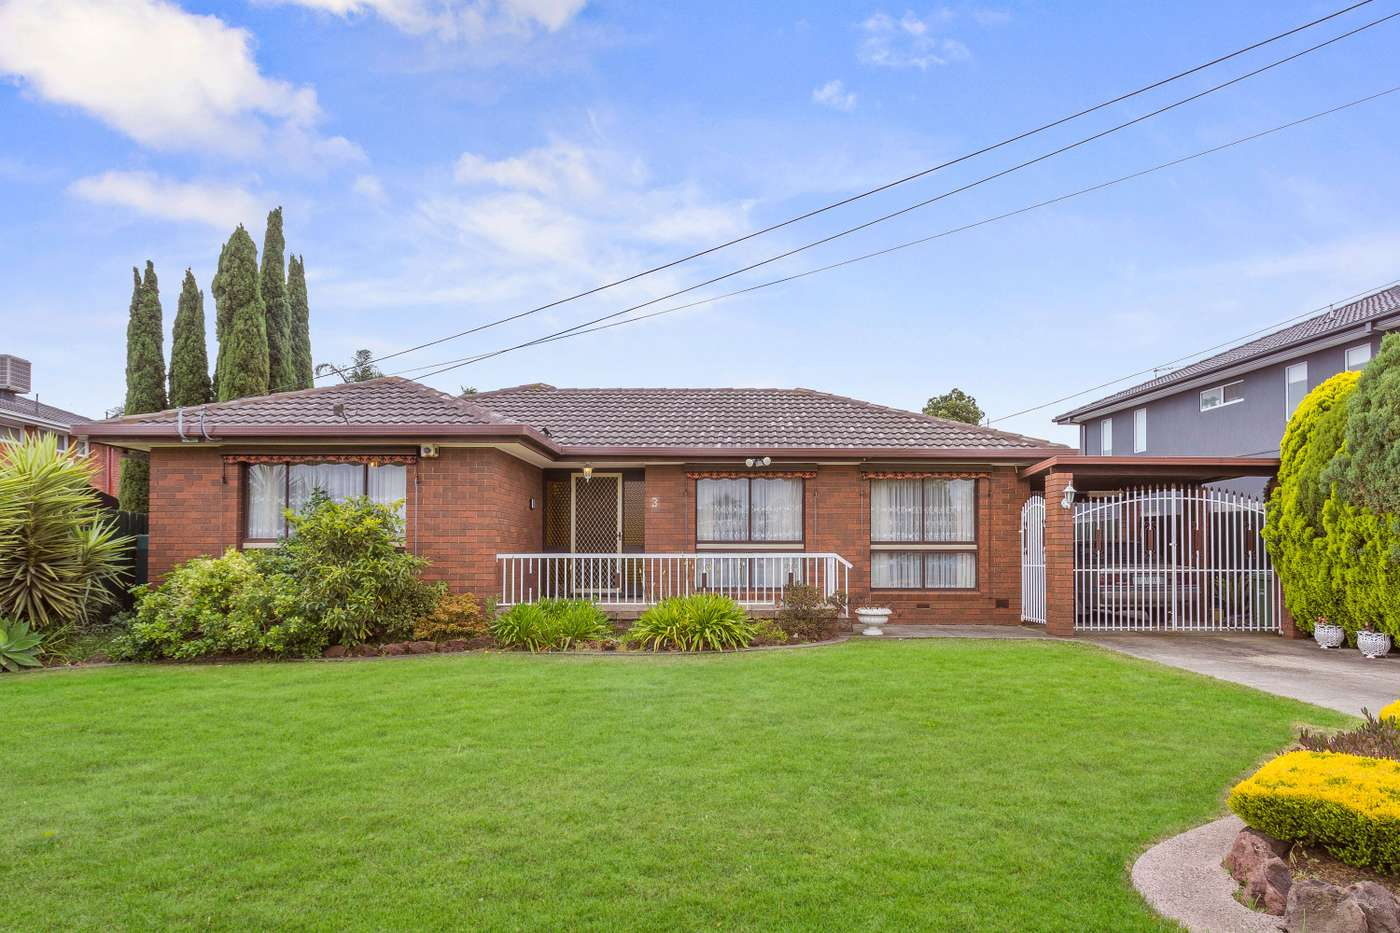 Main view of Homely house listing, 3 Grantley Drive, Gladstone Park, VIC 3043